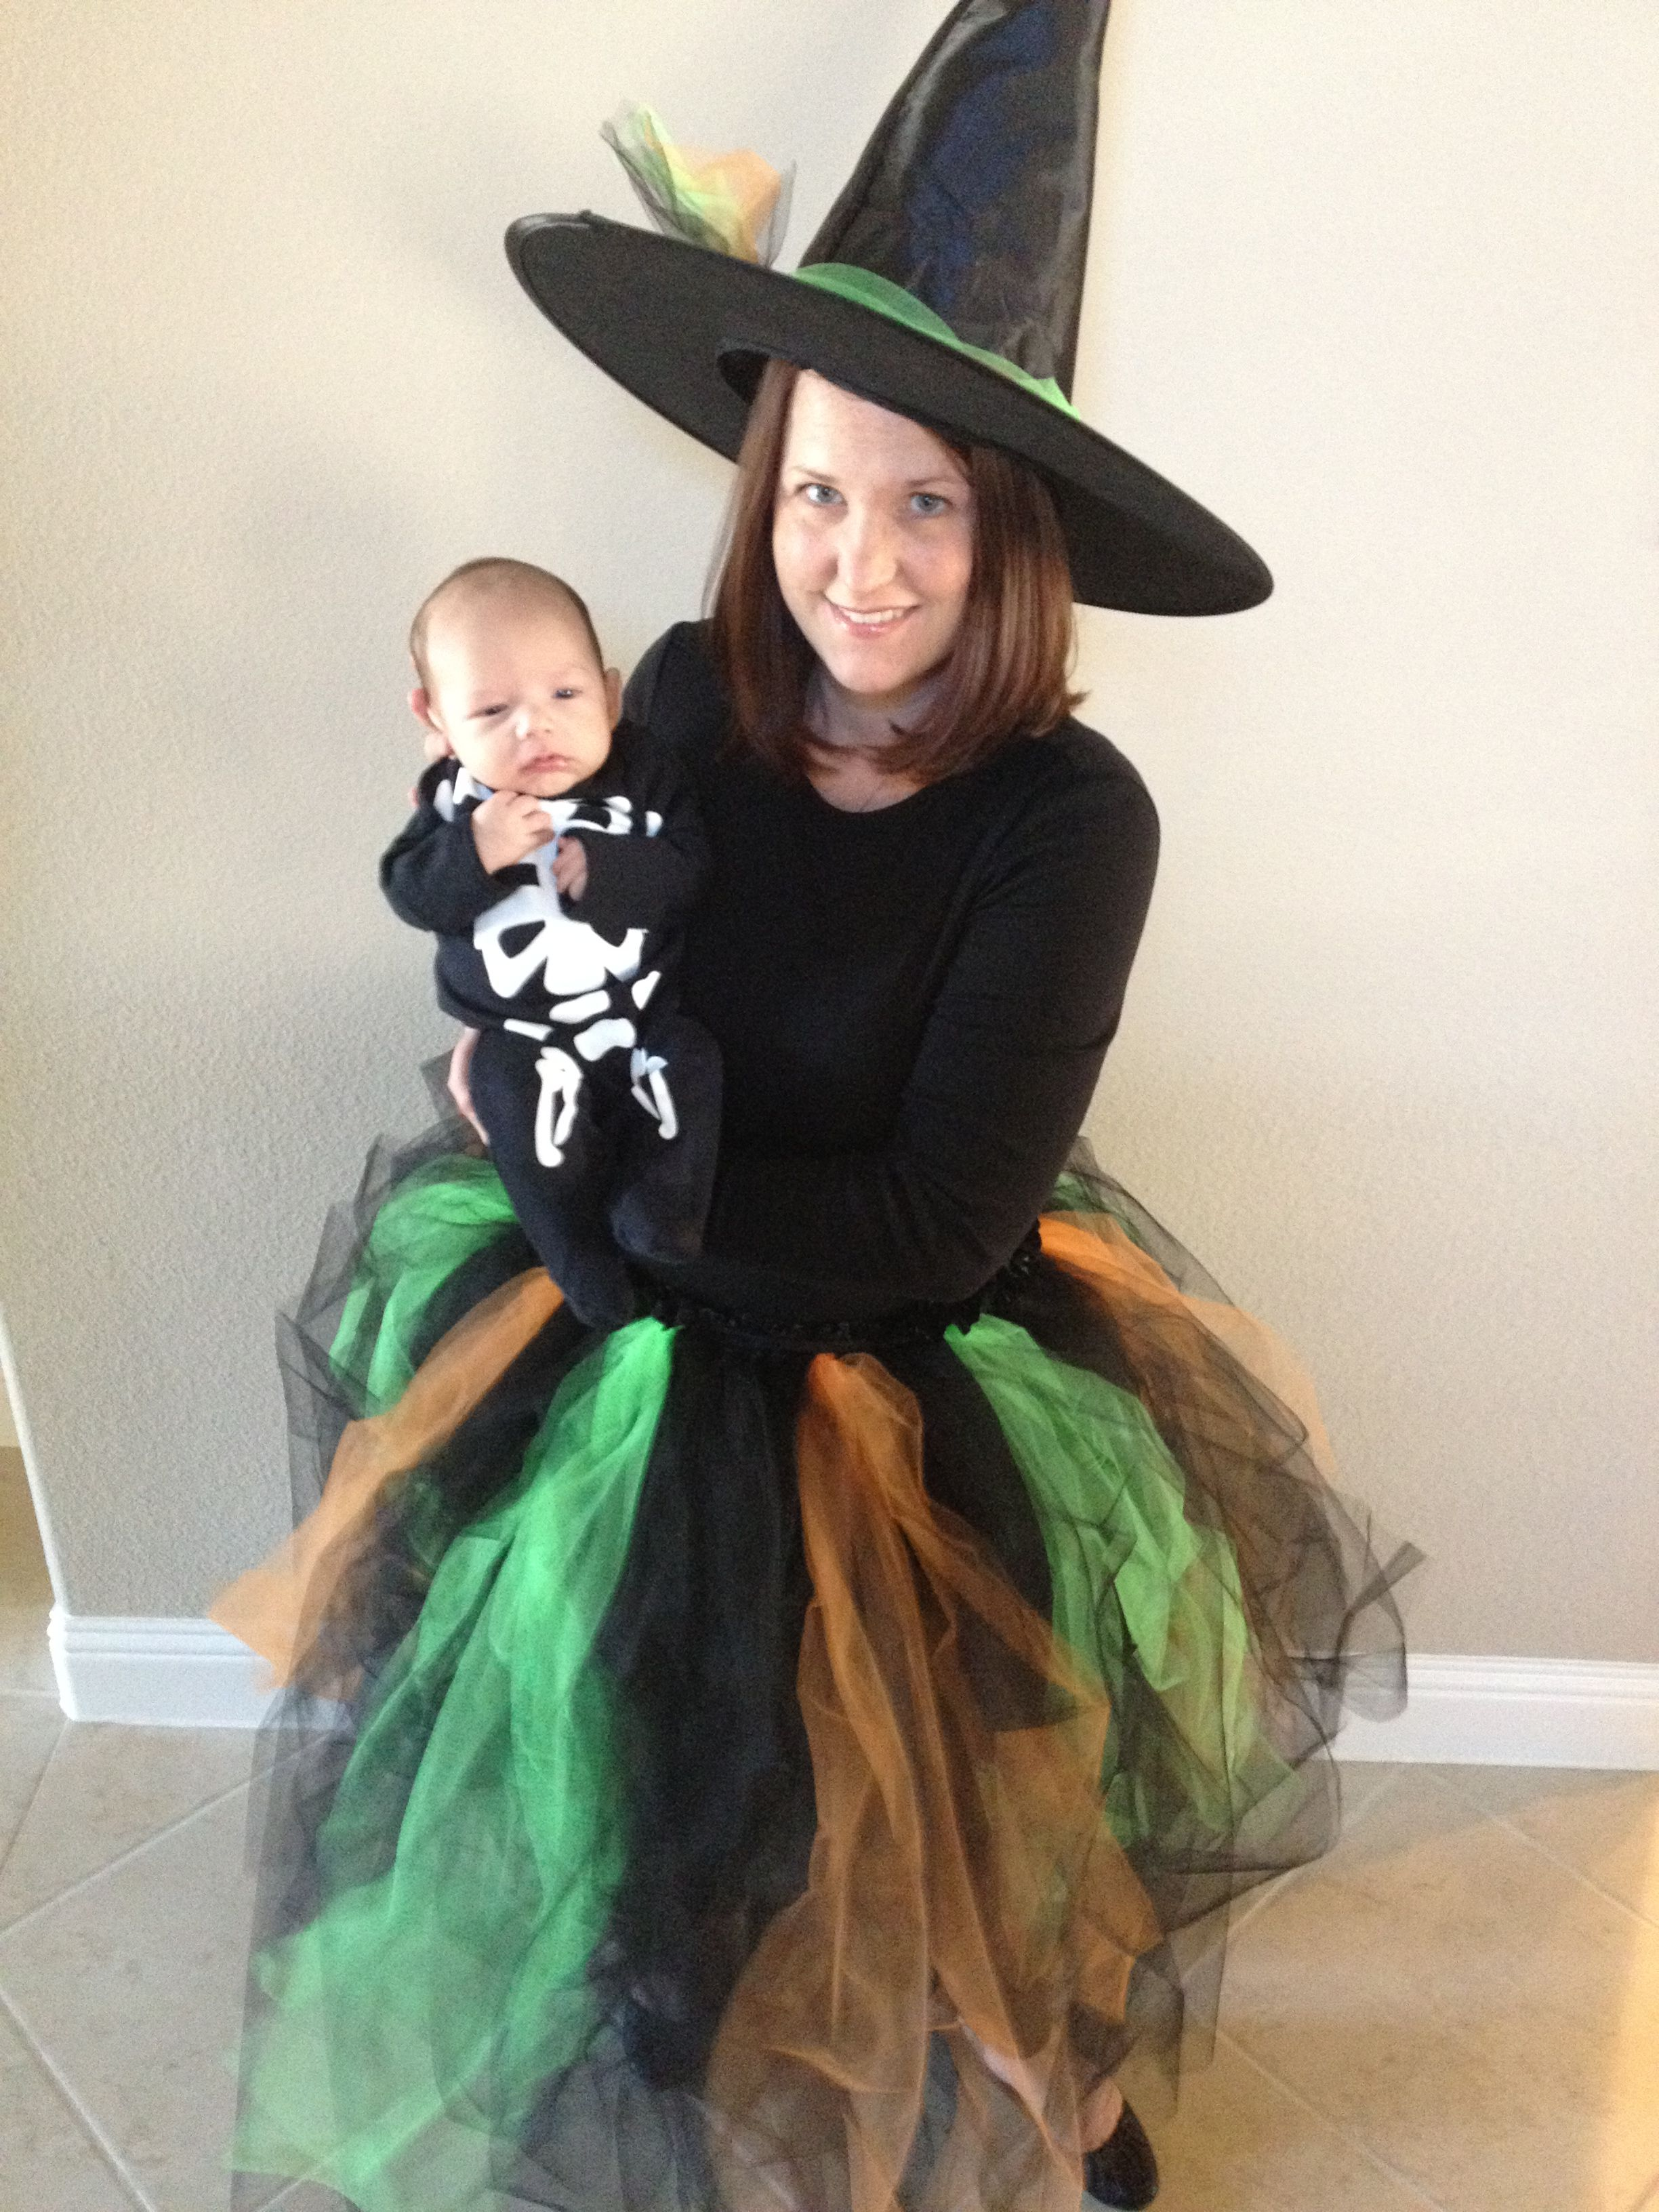 My Diy Homemade Witch Costume Love It Witch Costume Tutu Tulle Diy Halloween Homemade Witch Costume Diy Tutu Skirt Witch Outfit